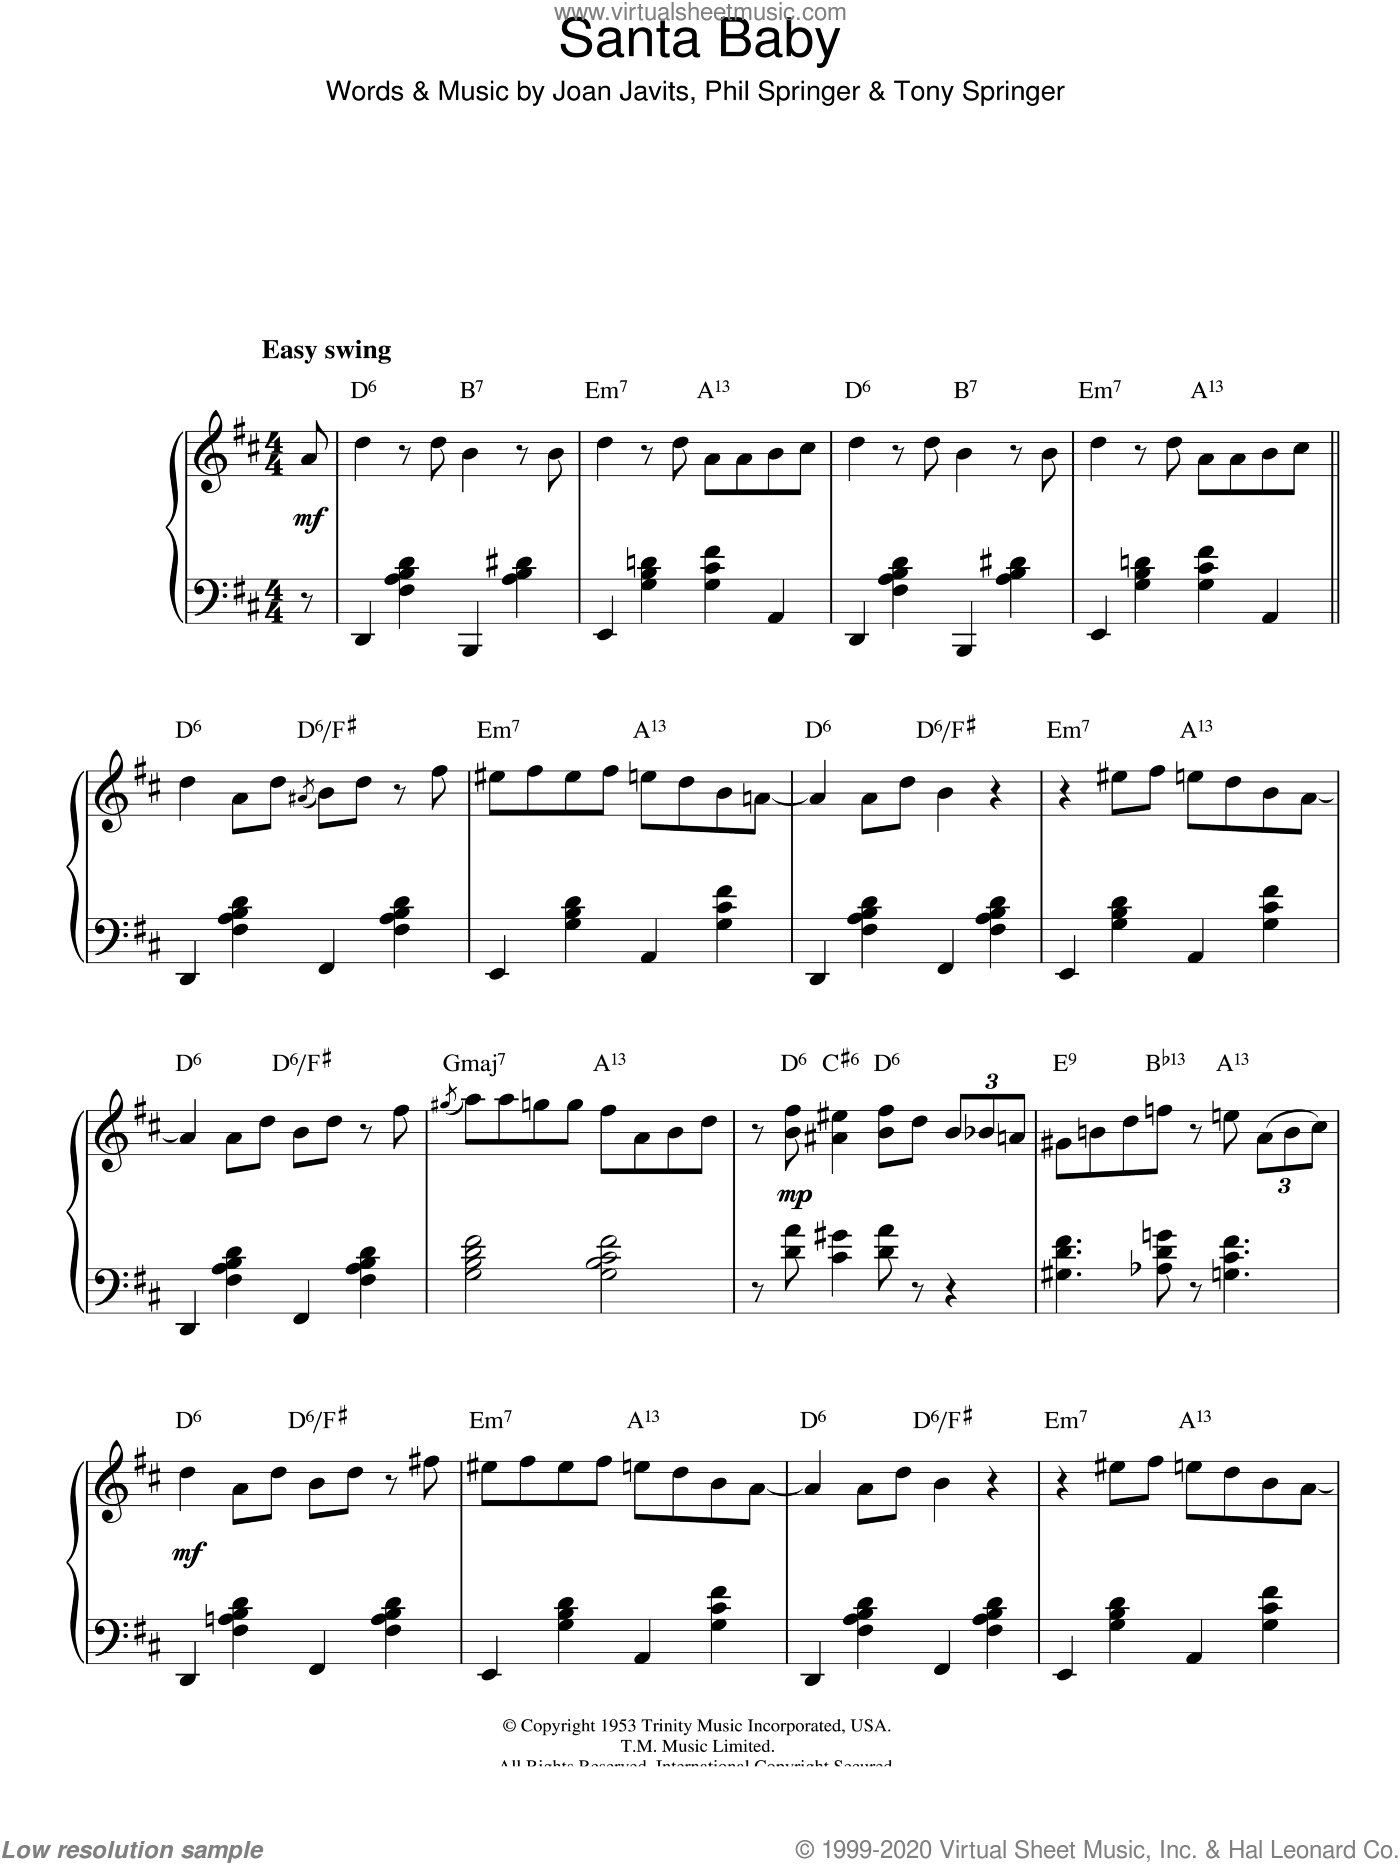 Santa Baby sheet music for piano solo by Tony Springer